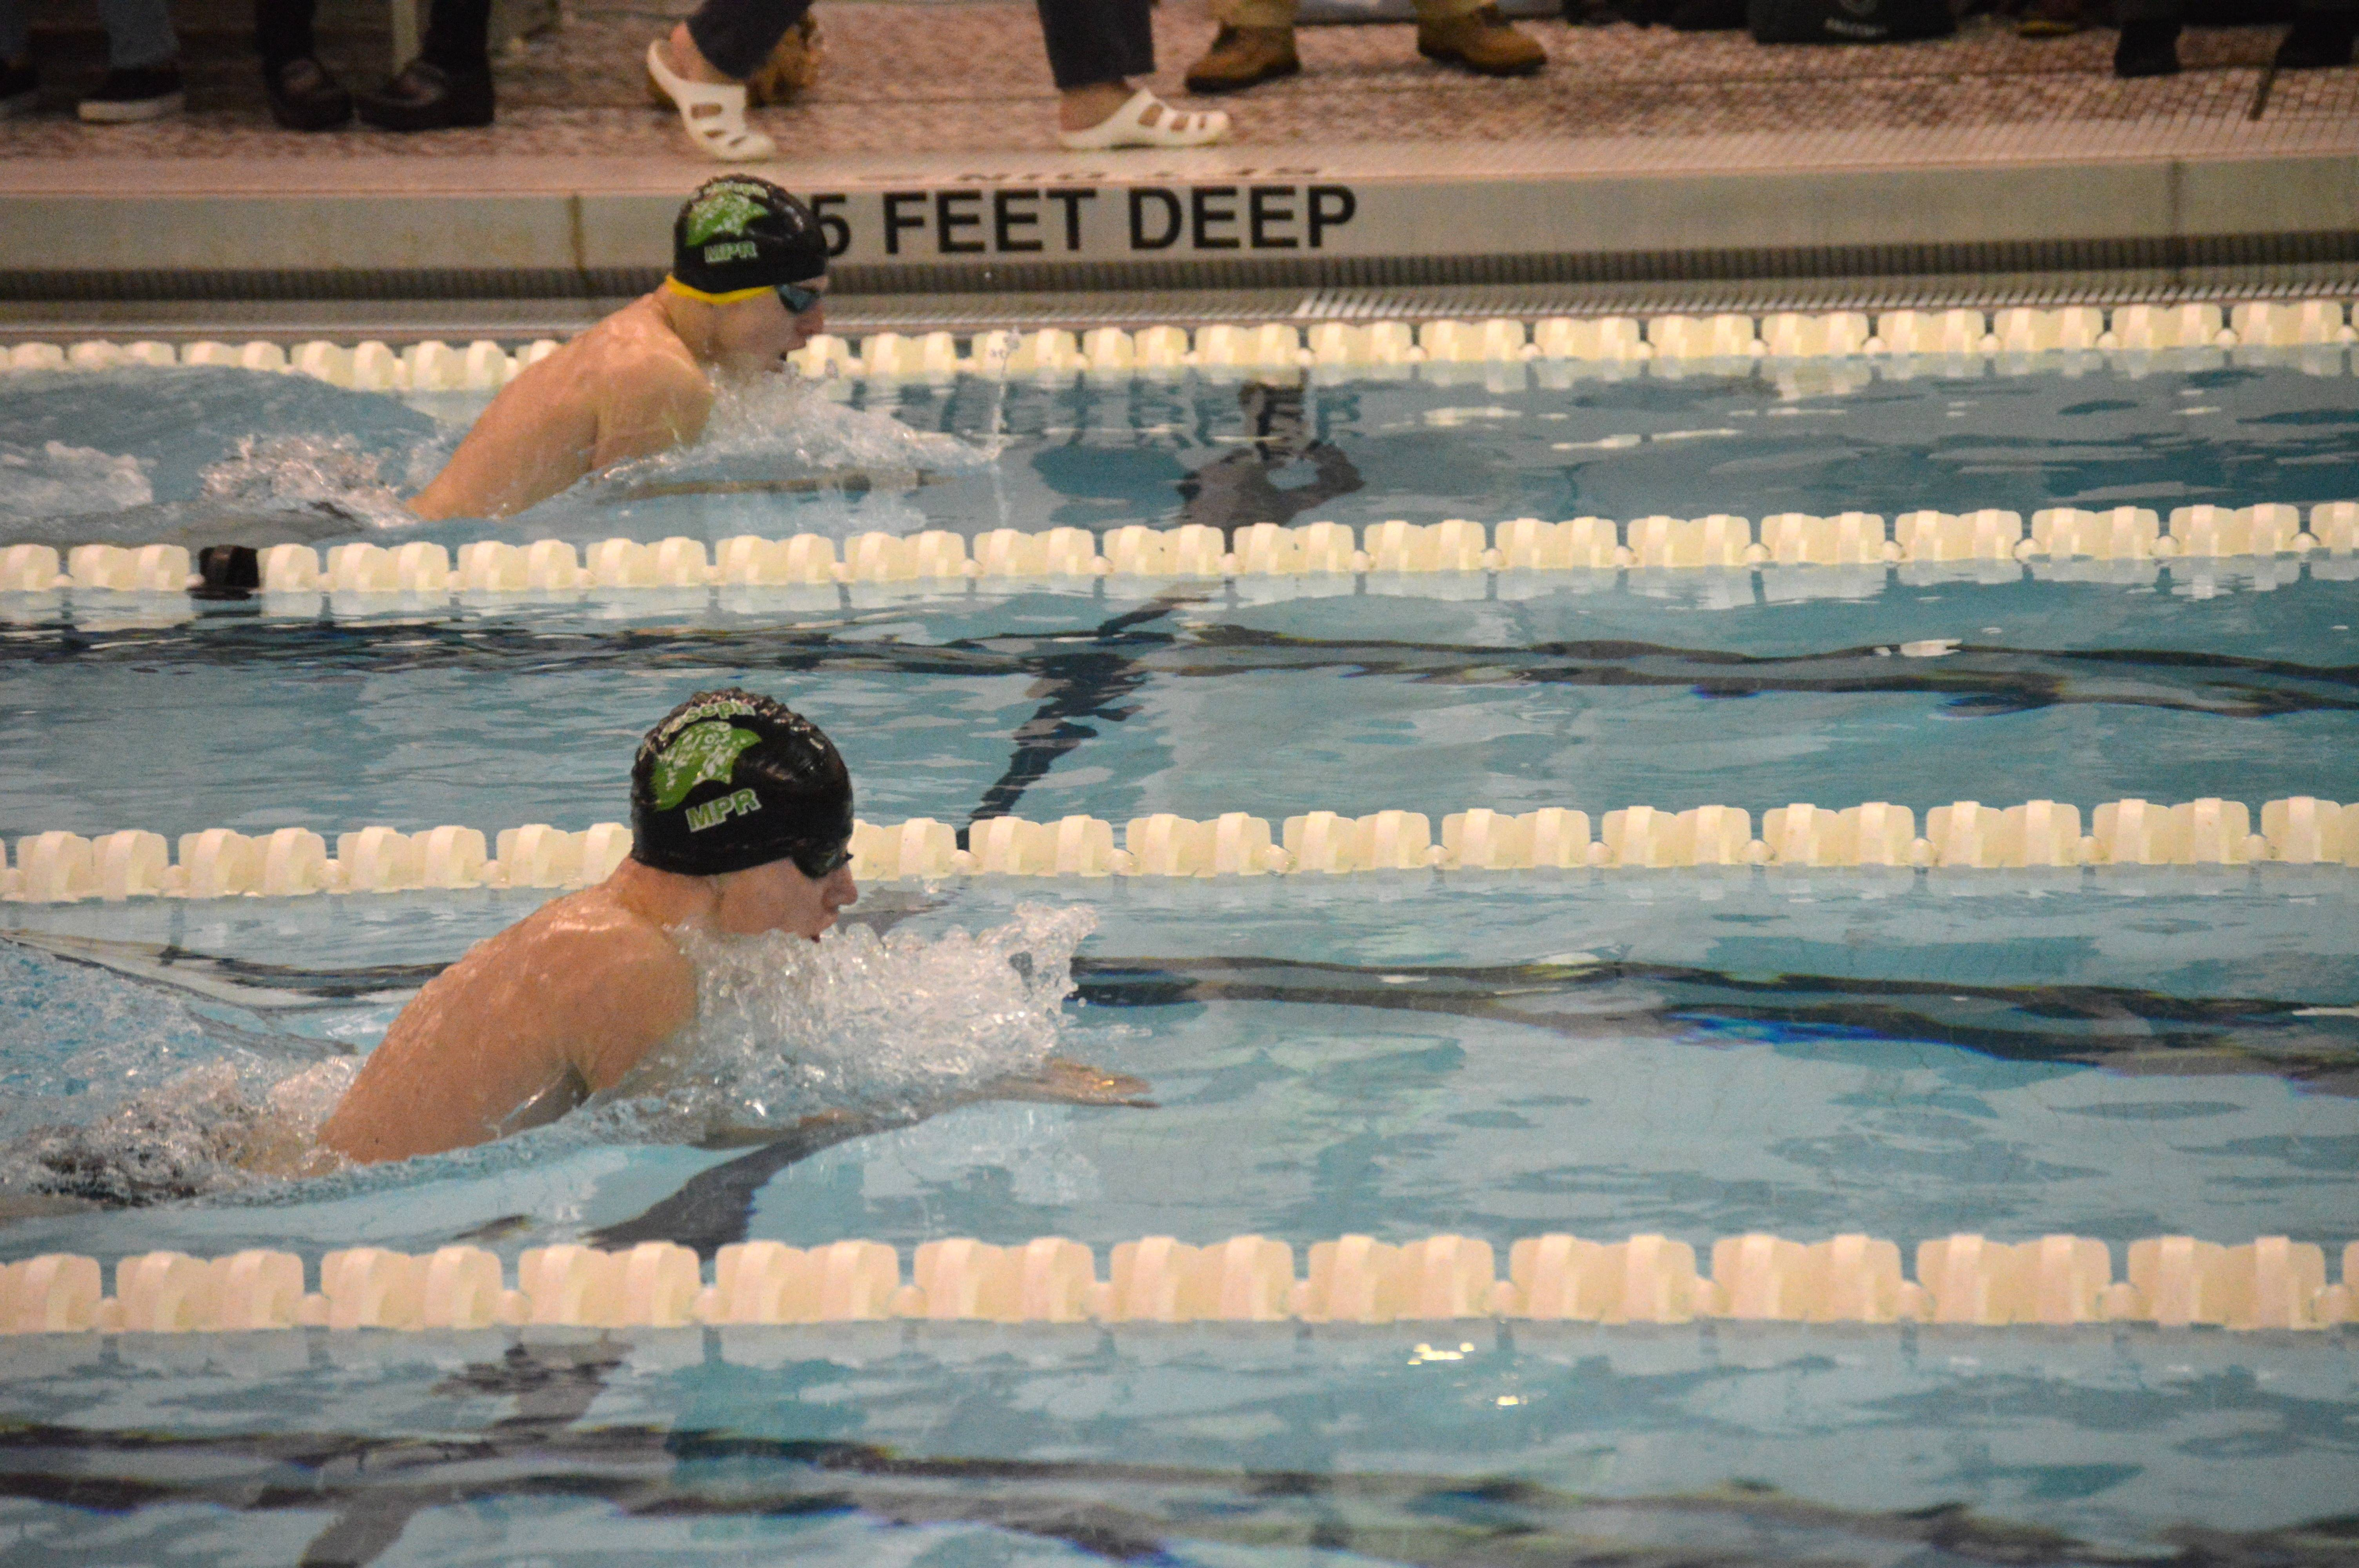 954fe1ac0ddfd90239fc_1-18-17_Mike_Esposito_and_George_Wade_finished_1-2_in_the_100_Breaststroke.JPG